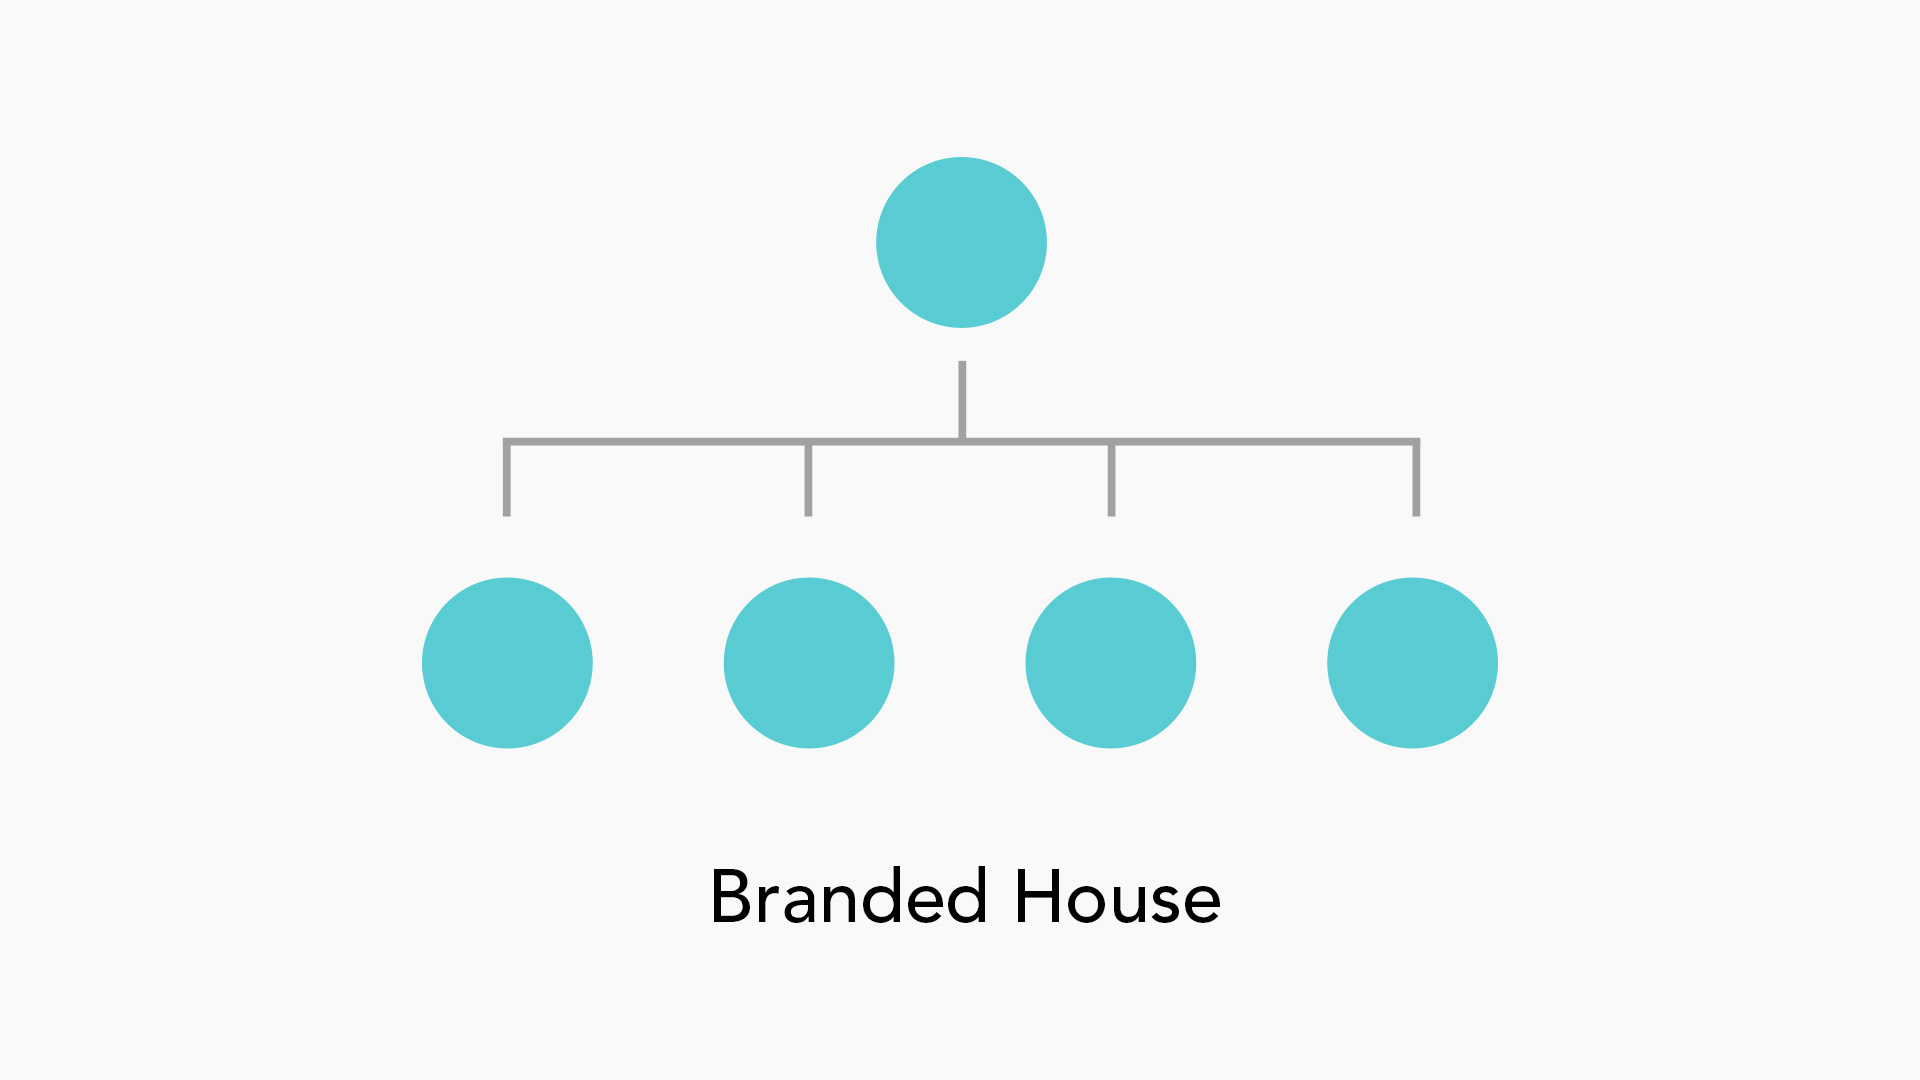 branded house diagram